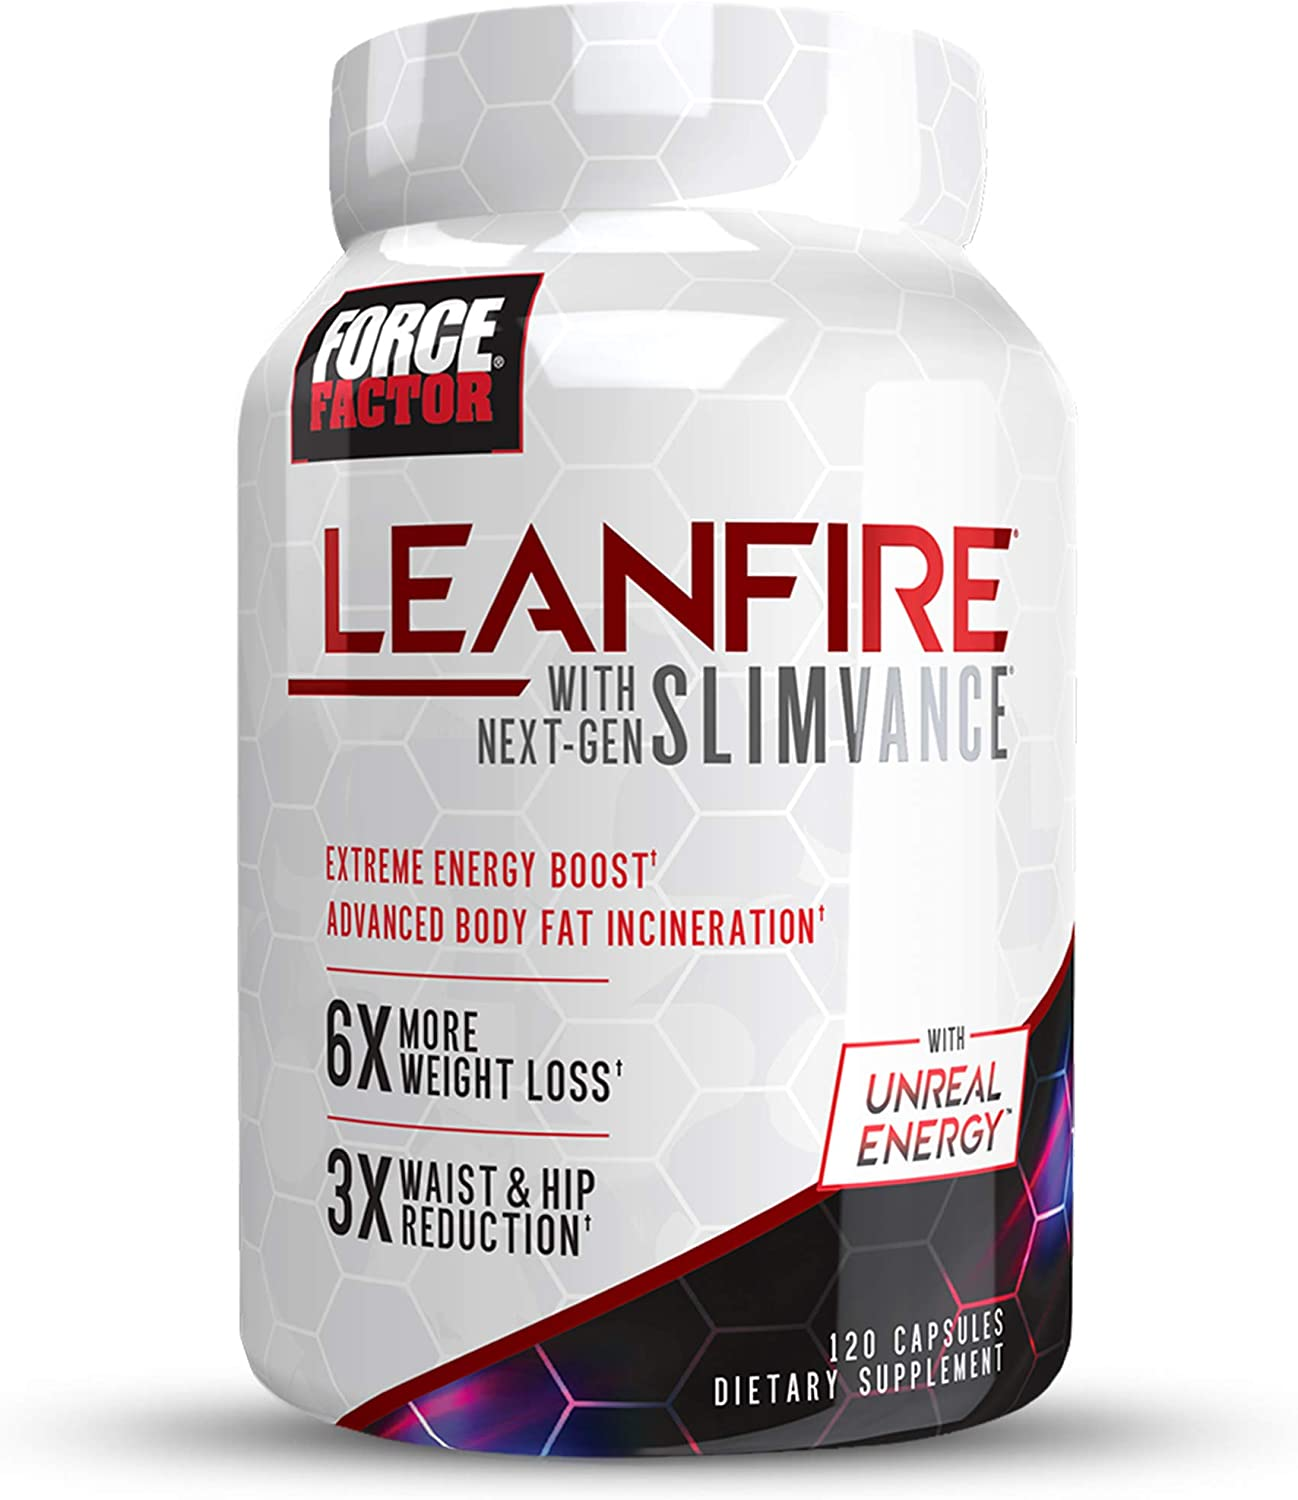 Force Factor LeanFire with Next-Gen Slimvance, Advanced Thermogenic Fat Burner, Extend Elevated Energy & Endurance, Enhance Focus & Mental Clarity, 120 Count